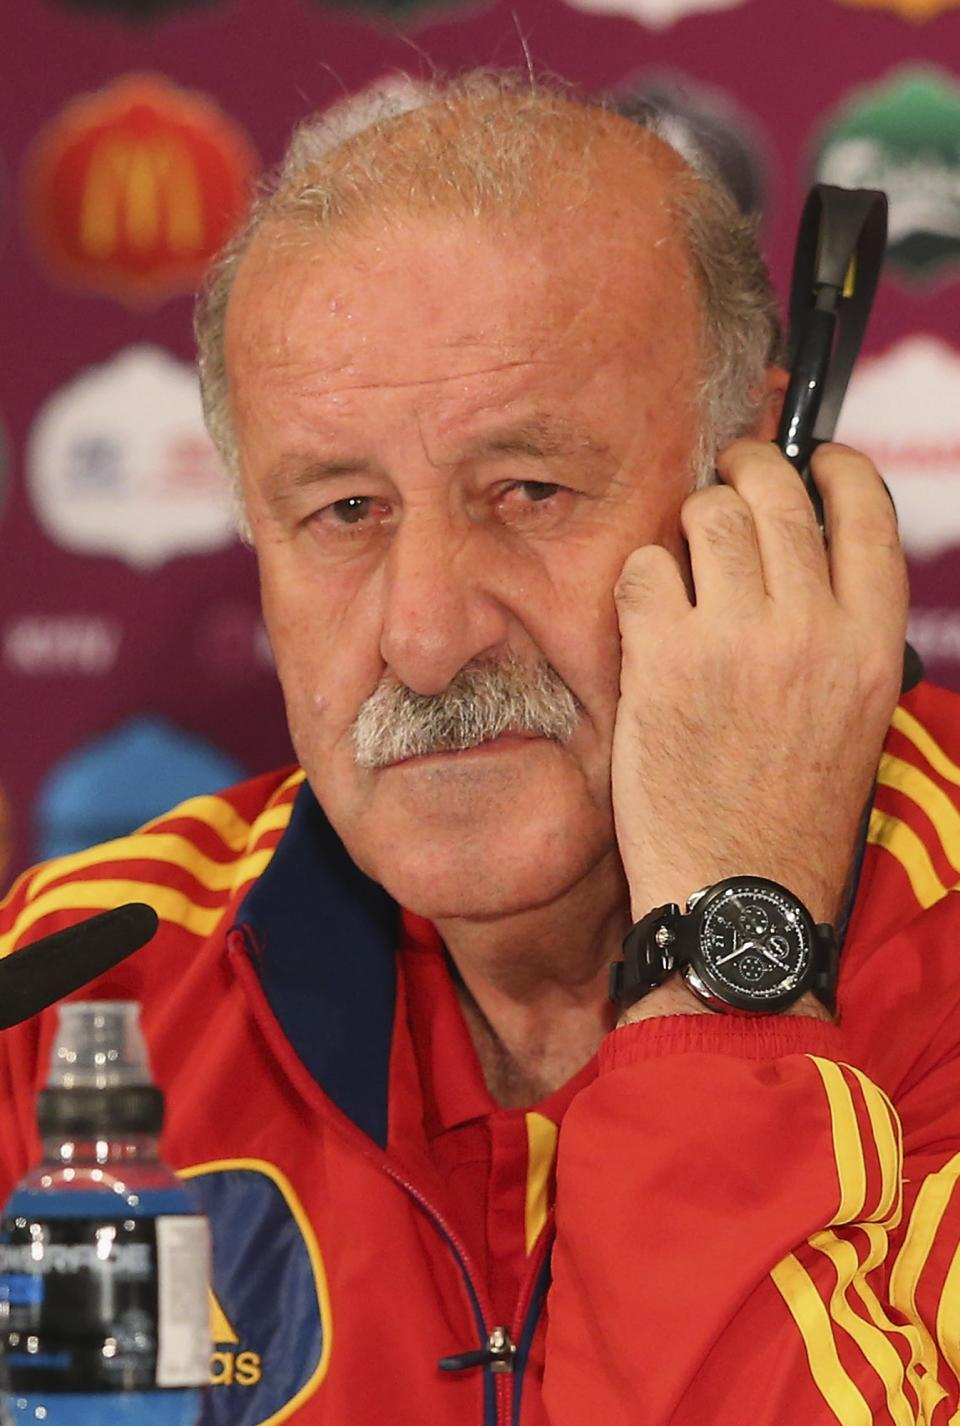 In this handout image provided by UEFA Spain coach Vicente del Bosque talks to the media during a Euro 2012 soccer championship press conference at the Olympic Stadium in Kiev, Ukraine, Saturday, June 30, 2012, on the eve of the final between Spain and Italy.  (AP Photo/UEFA via Getty Images)